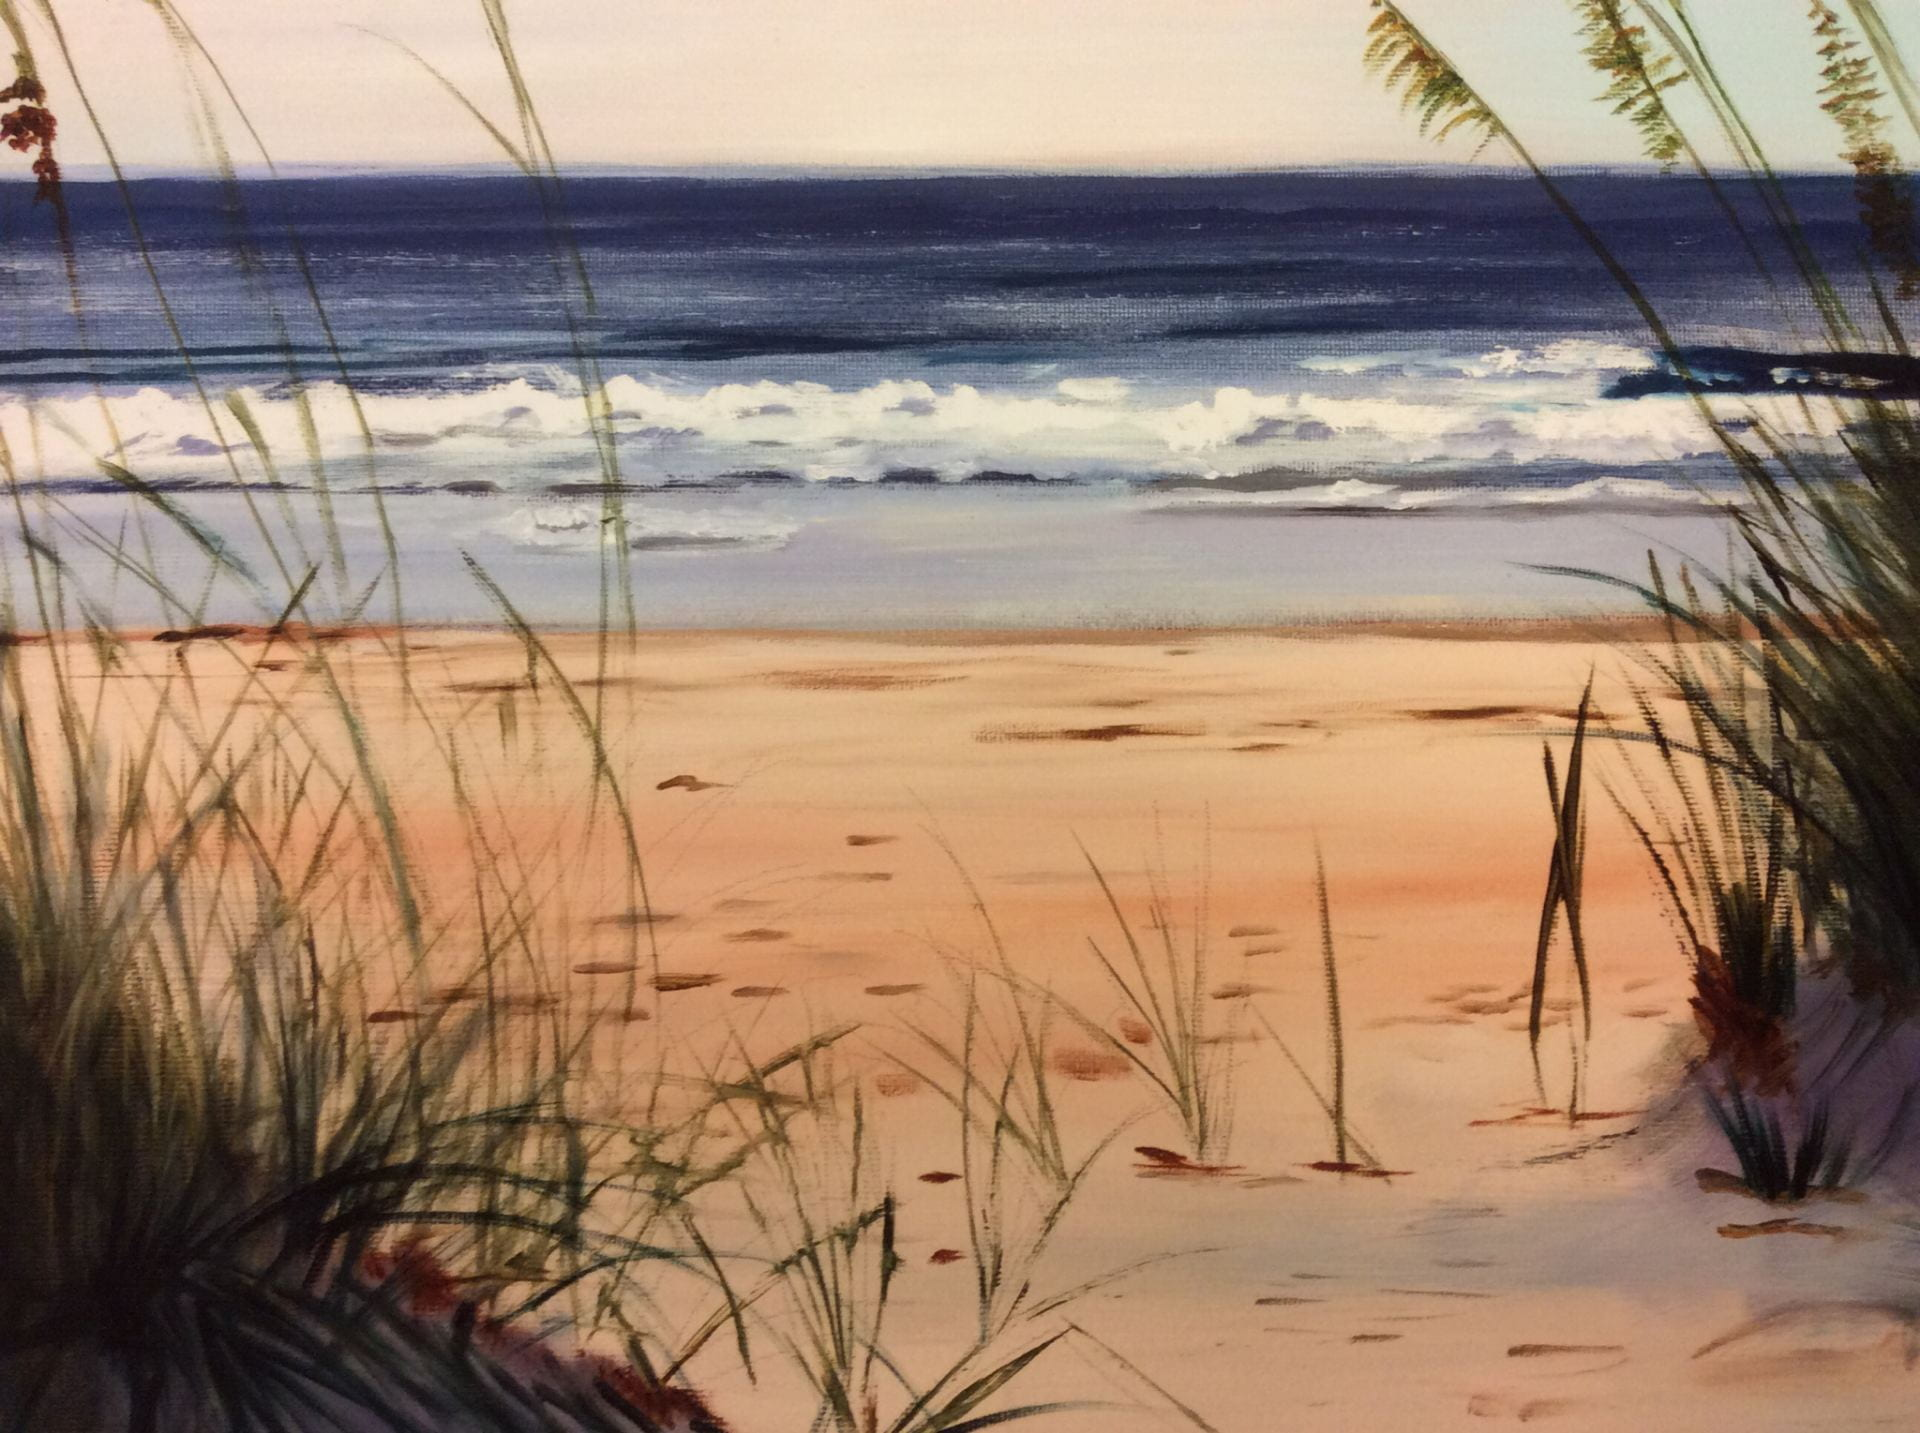 The Dunes At Stone Harbor NJ created by Nancy Schell